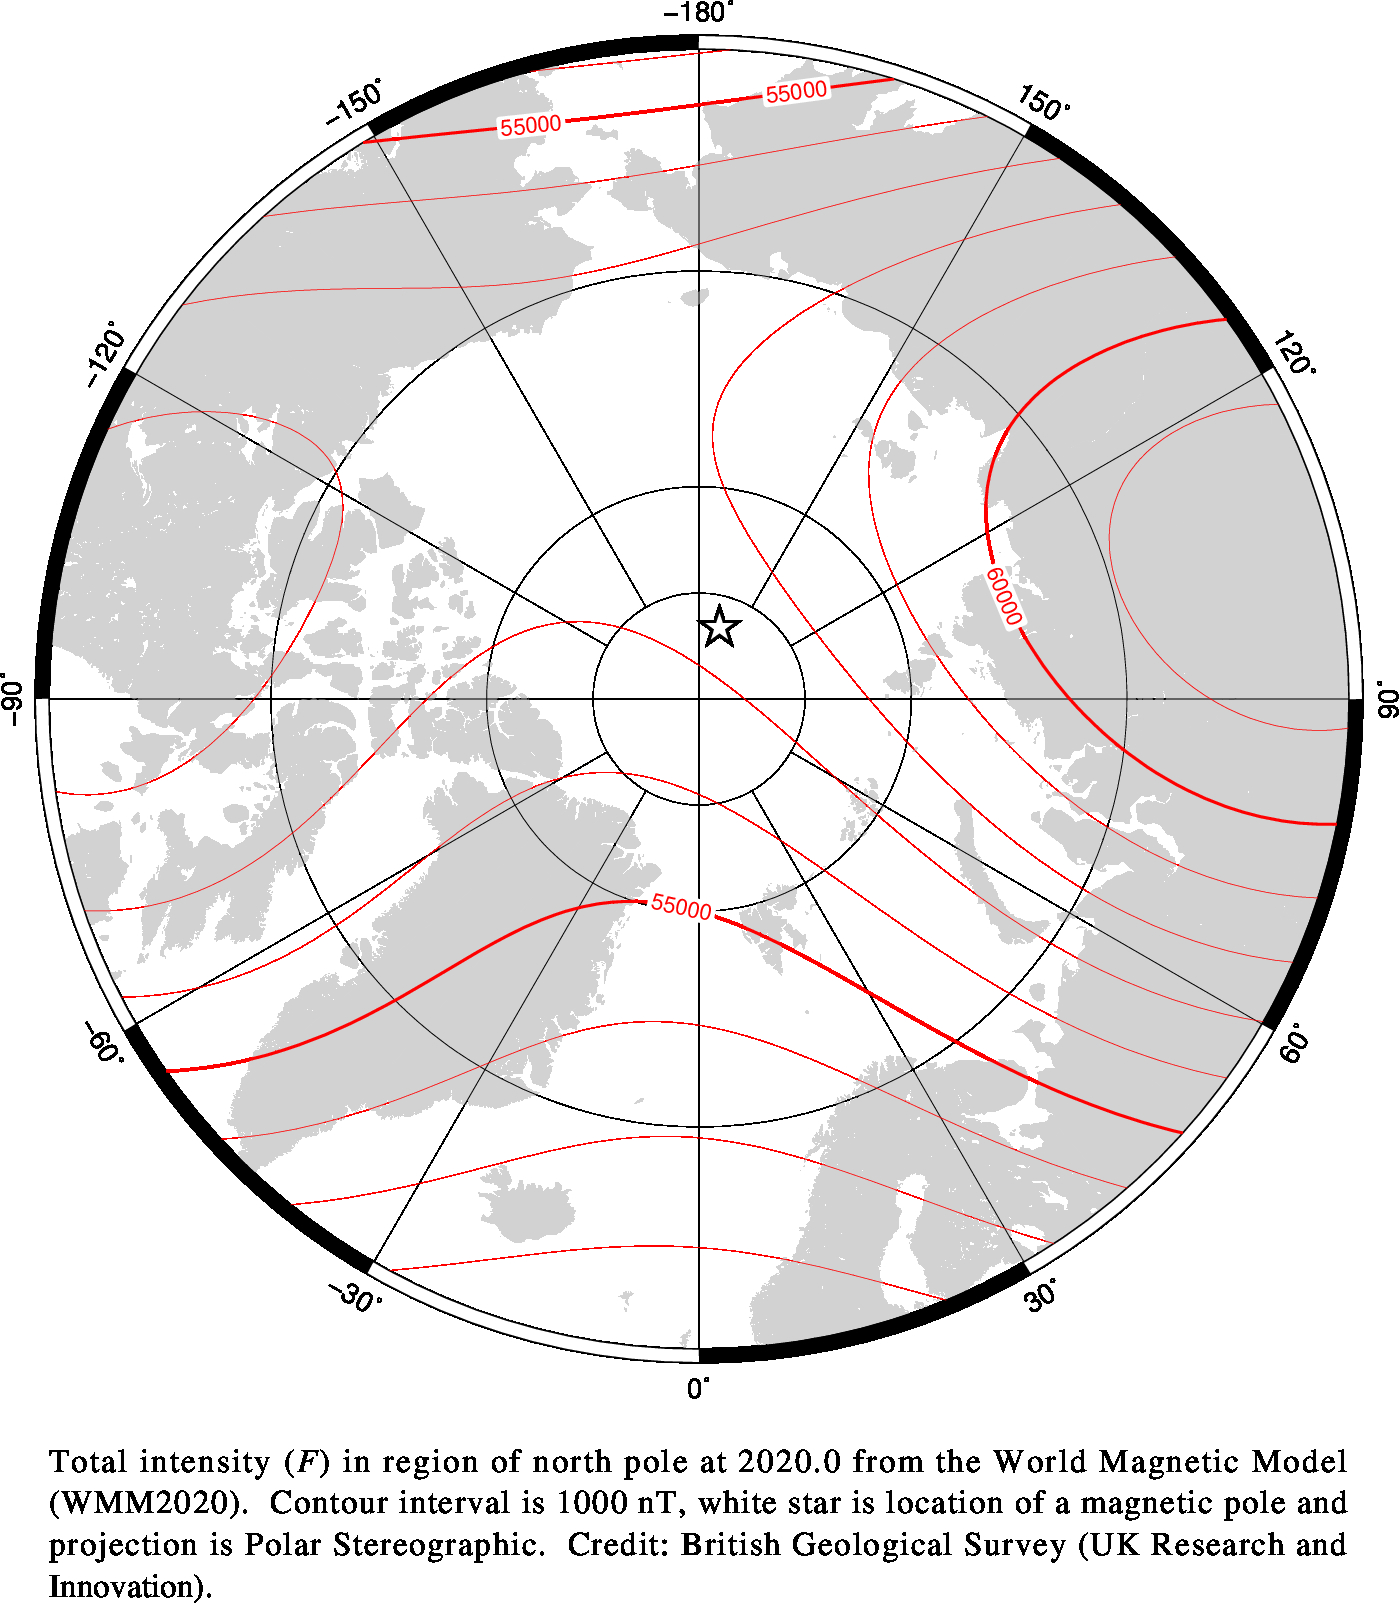 Magnetic chart showing Total Intensity